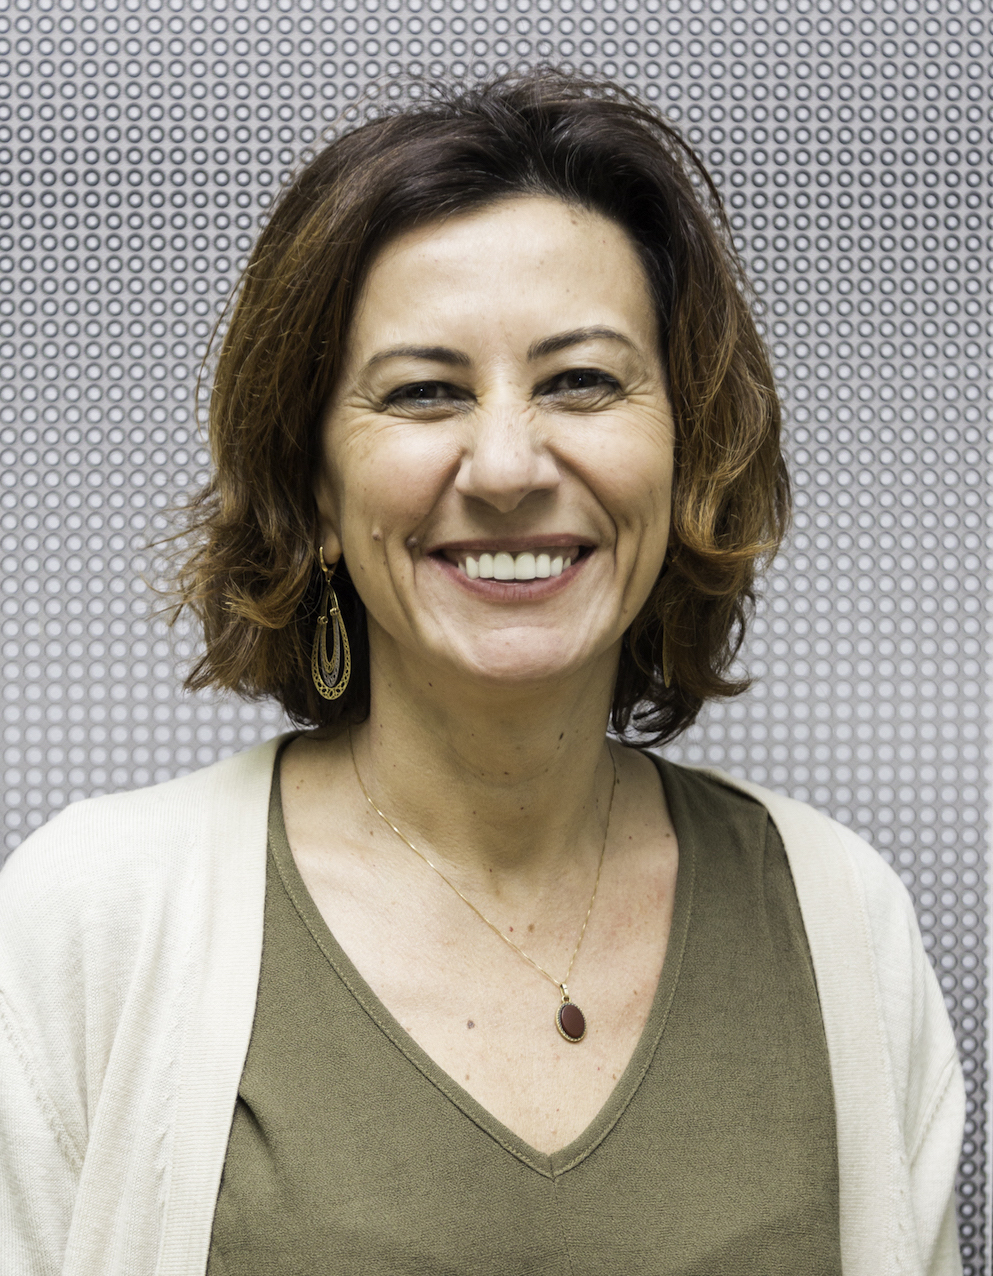 Nayla Fahed